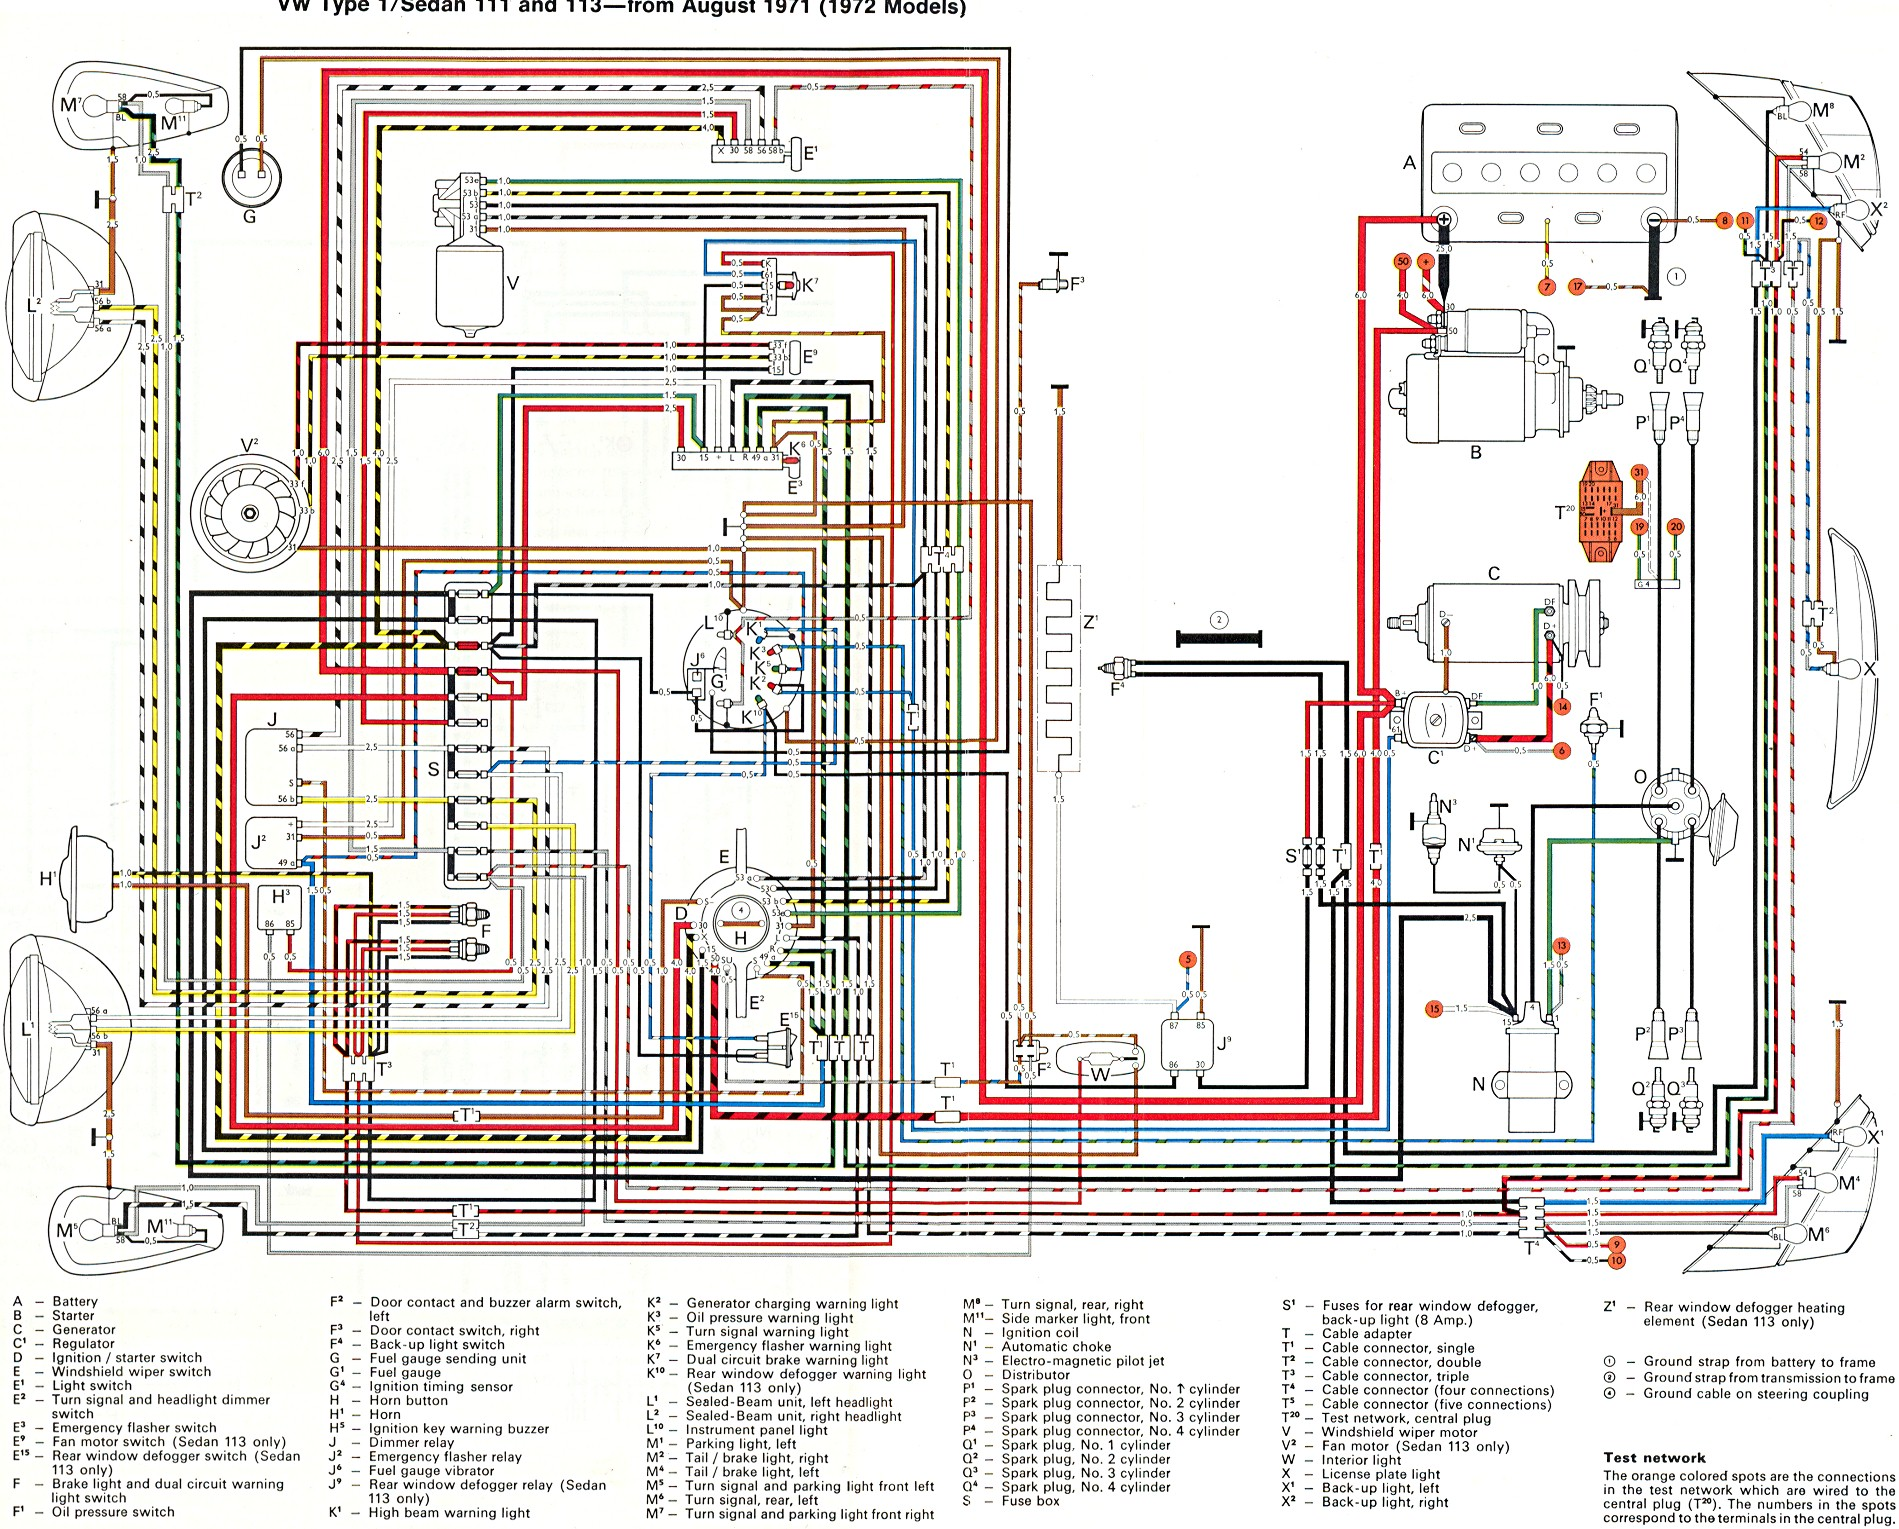 1972 VW Super Beetle Wiring Diagram on 1973 super beetle wiring diagram